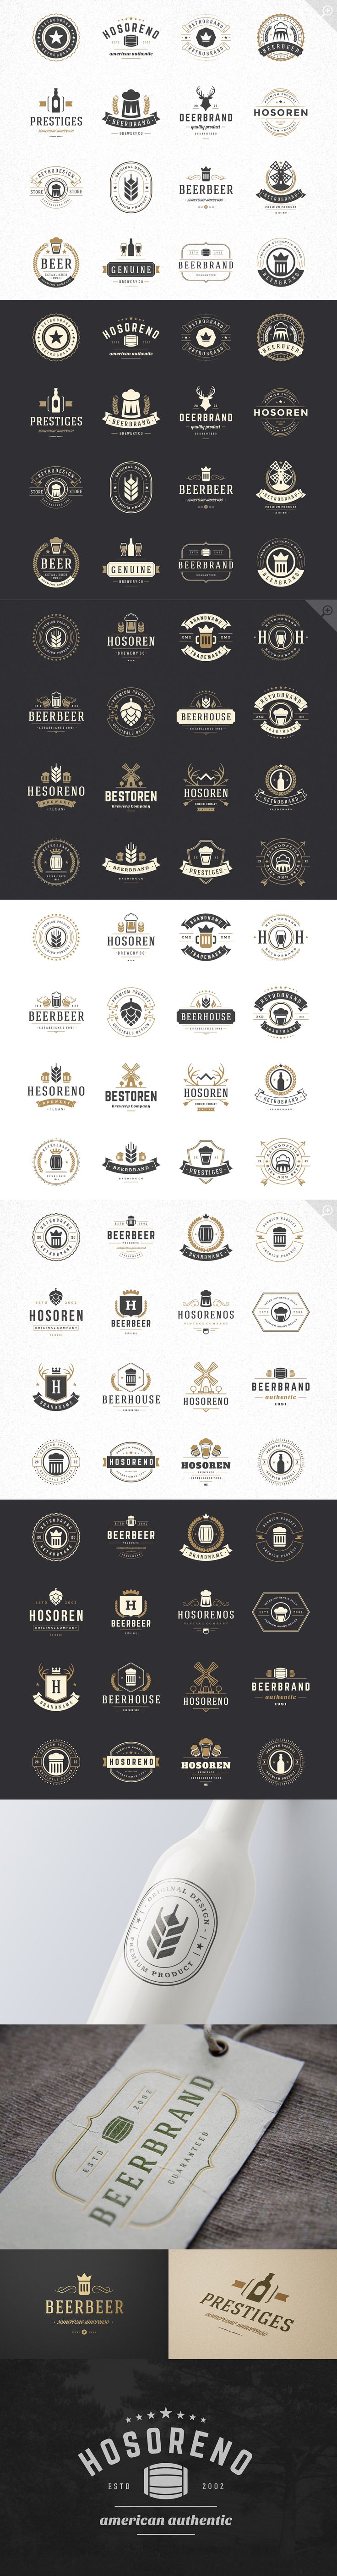 45 Beer brewery Retro Vintage Logotypes set. Vector design elements, business signs, logos, identity, labels, badges, stamps and other #design Download: https://creativemarket.com/VasyaKo/374643-45-Beer-Logotypes-and-Badges?u=ksioks